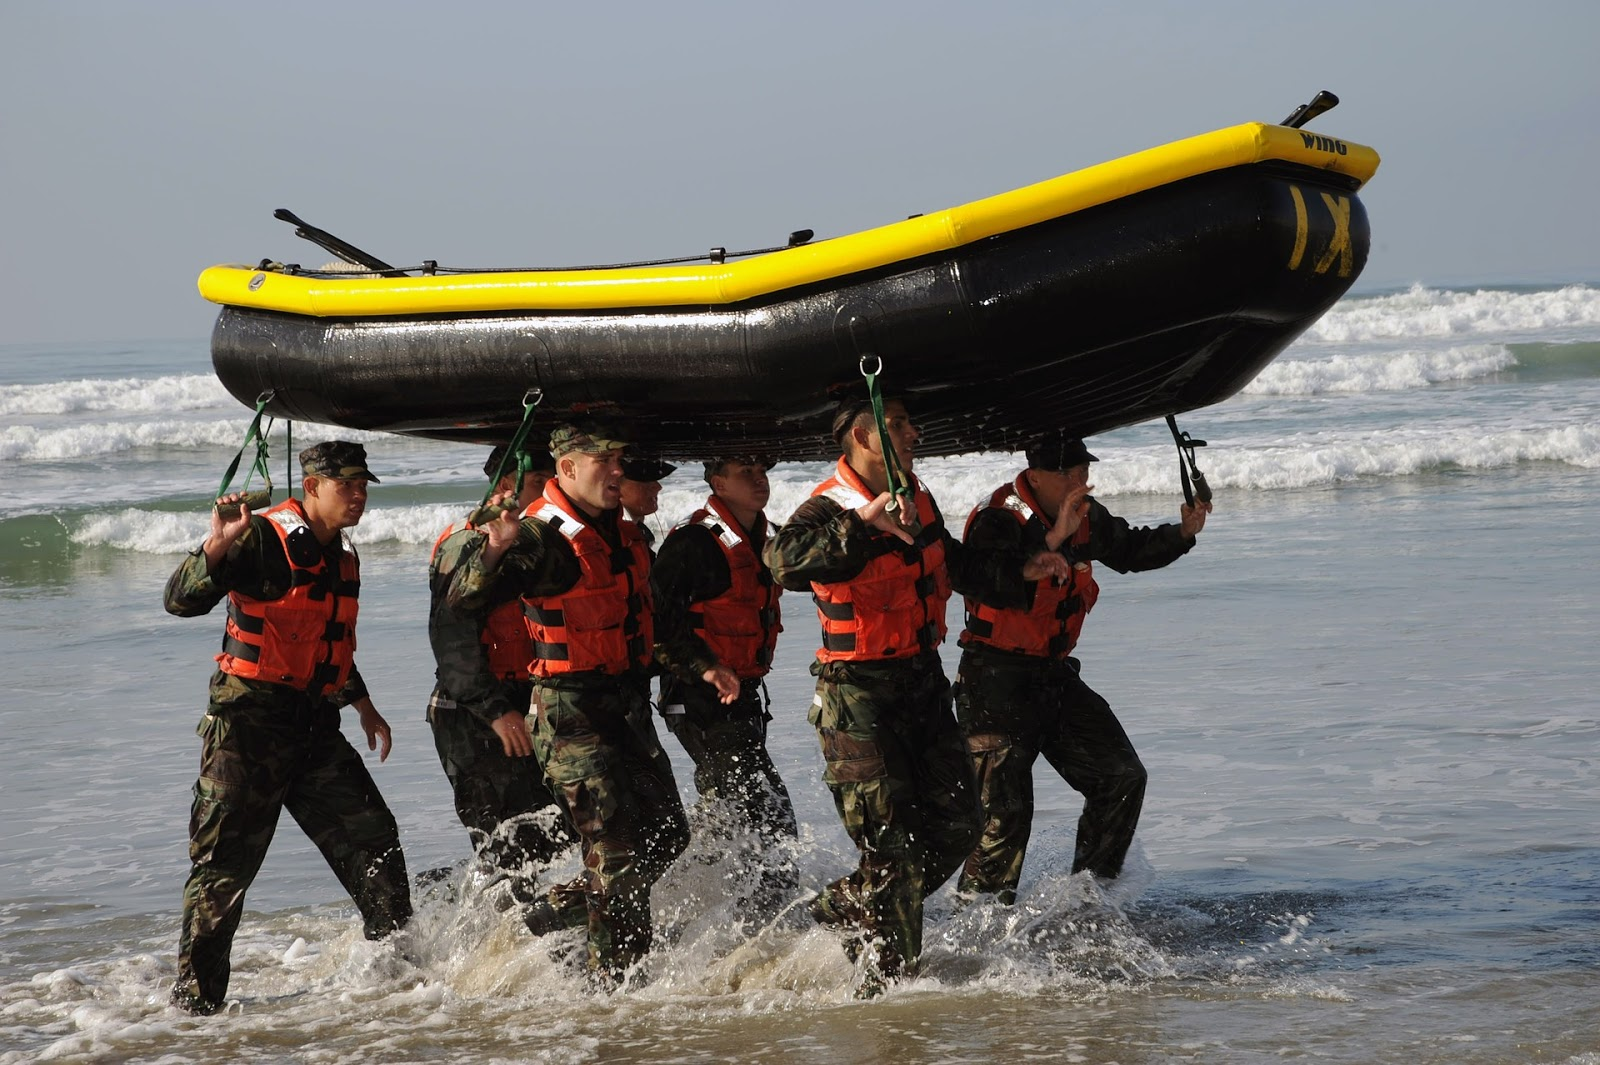 navy seals training by carrying black rubber boat on head to illustrate blog post about navy SEAL training